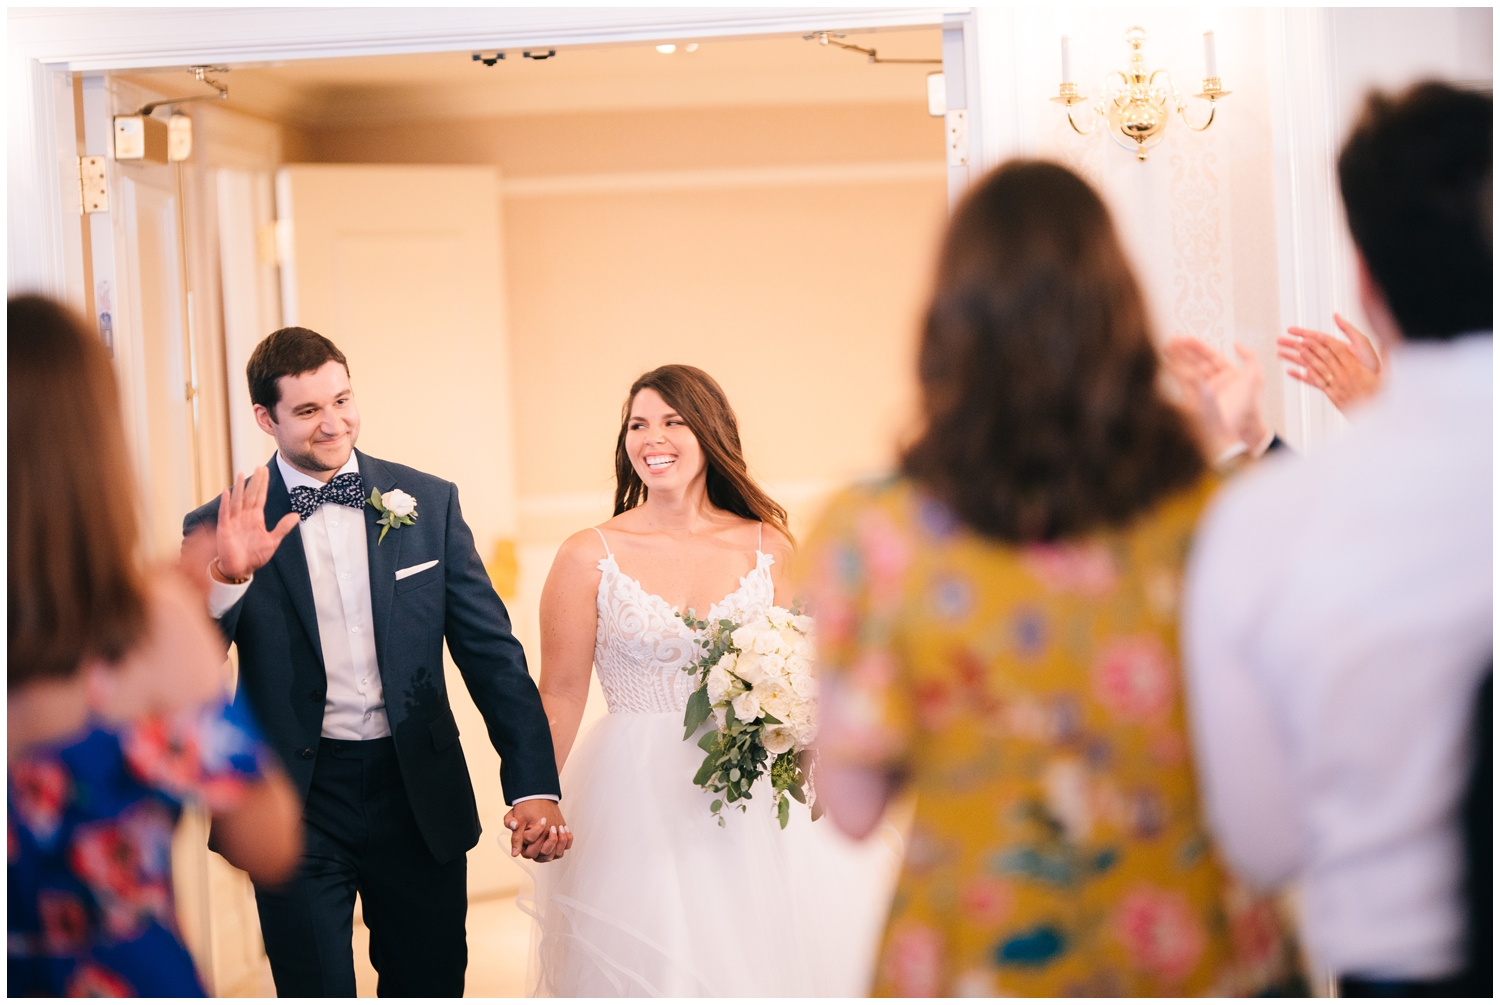 Madison Beach Hotel Wedding - Steven & Jessica_0194.jpg